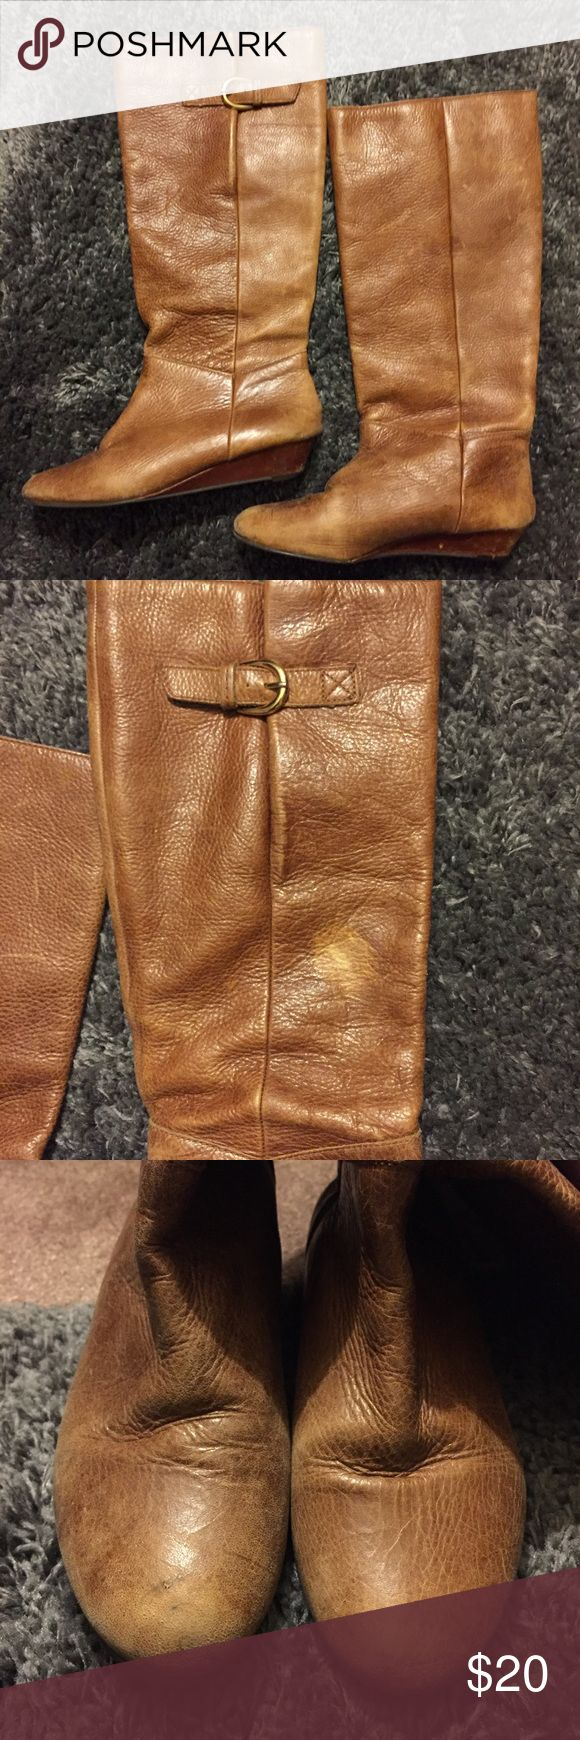 Steve Madden Intyce boots🎀 Must have Steve Madden boots! Have some noticeable wear but still have lots of life :) does have a white mark as pictured Steve Madden Shoes Heeled Boots